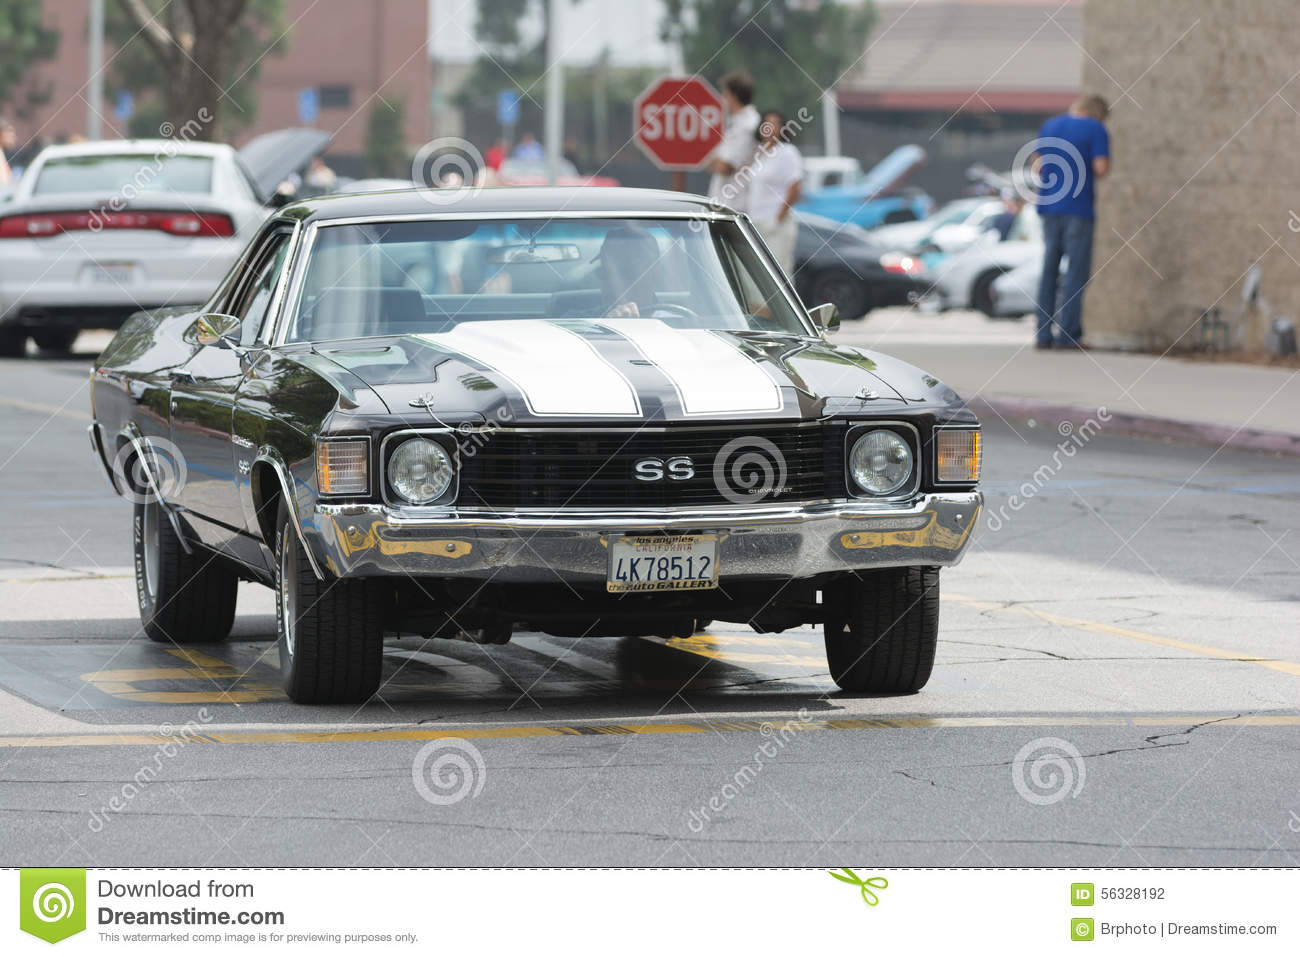 Chevrolet El Camino Ss Car On Display Editorial Photography